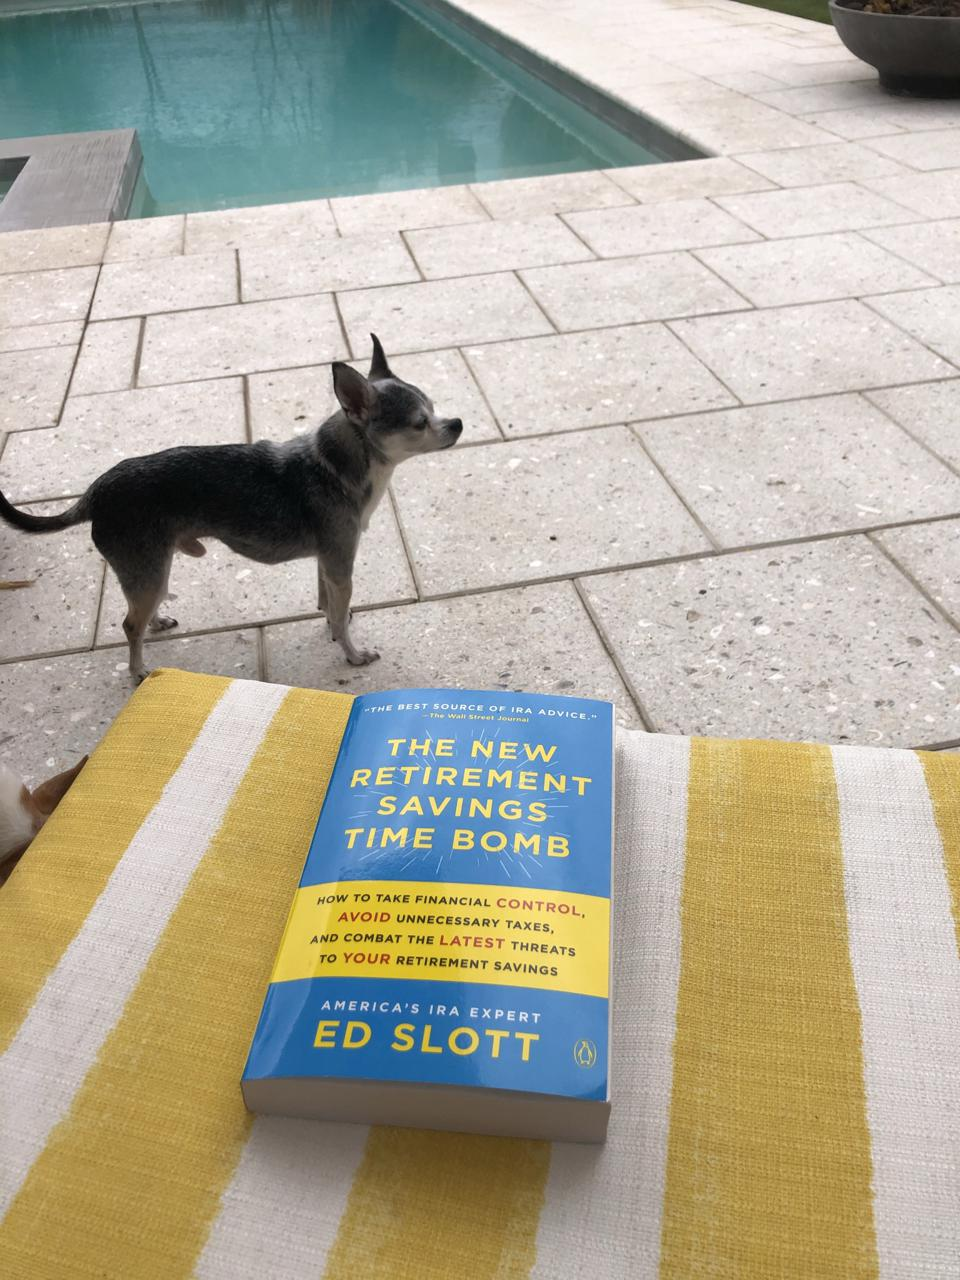 Chihuahua by pool and the book The New Retirement savings Time Bomb